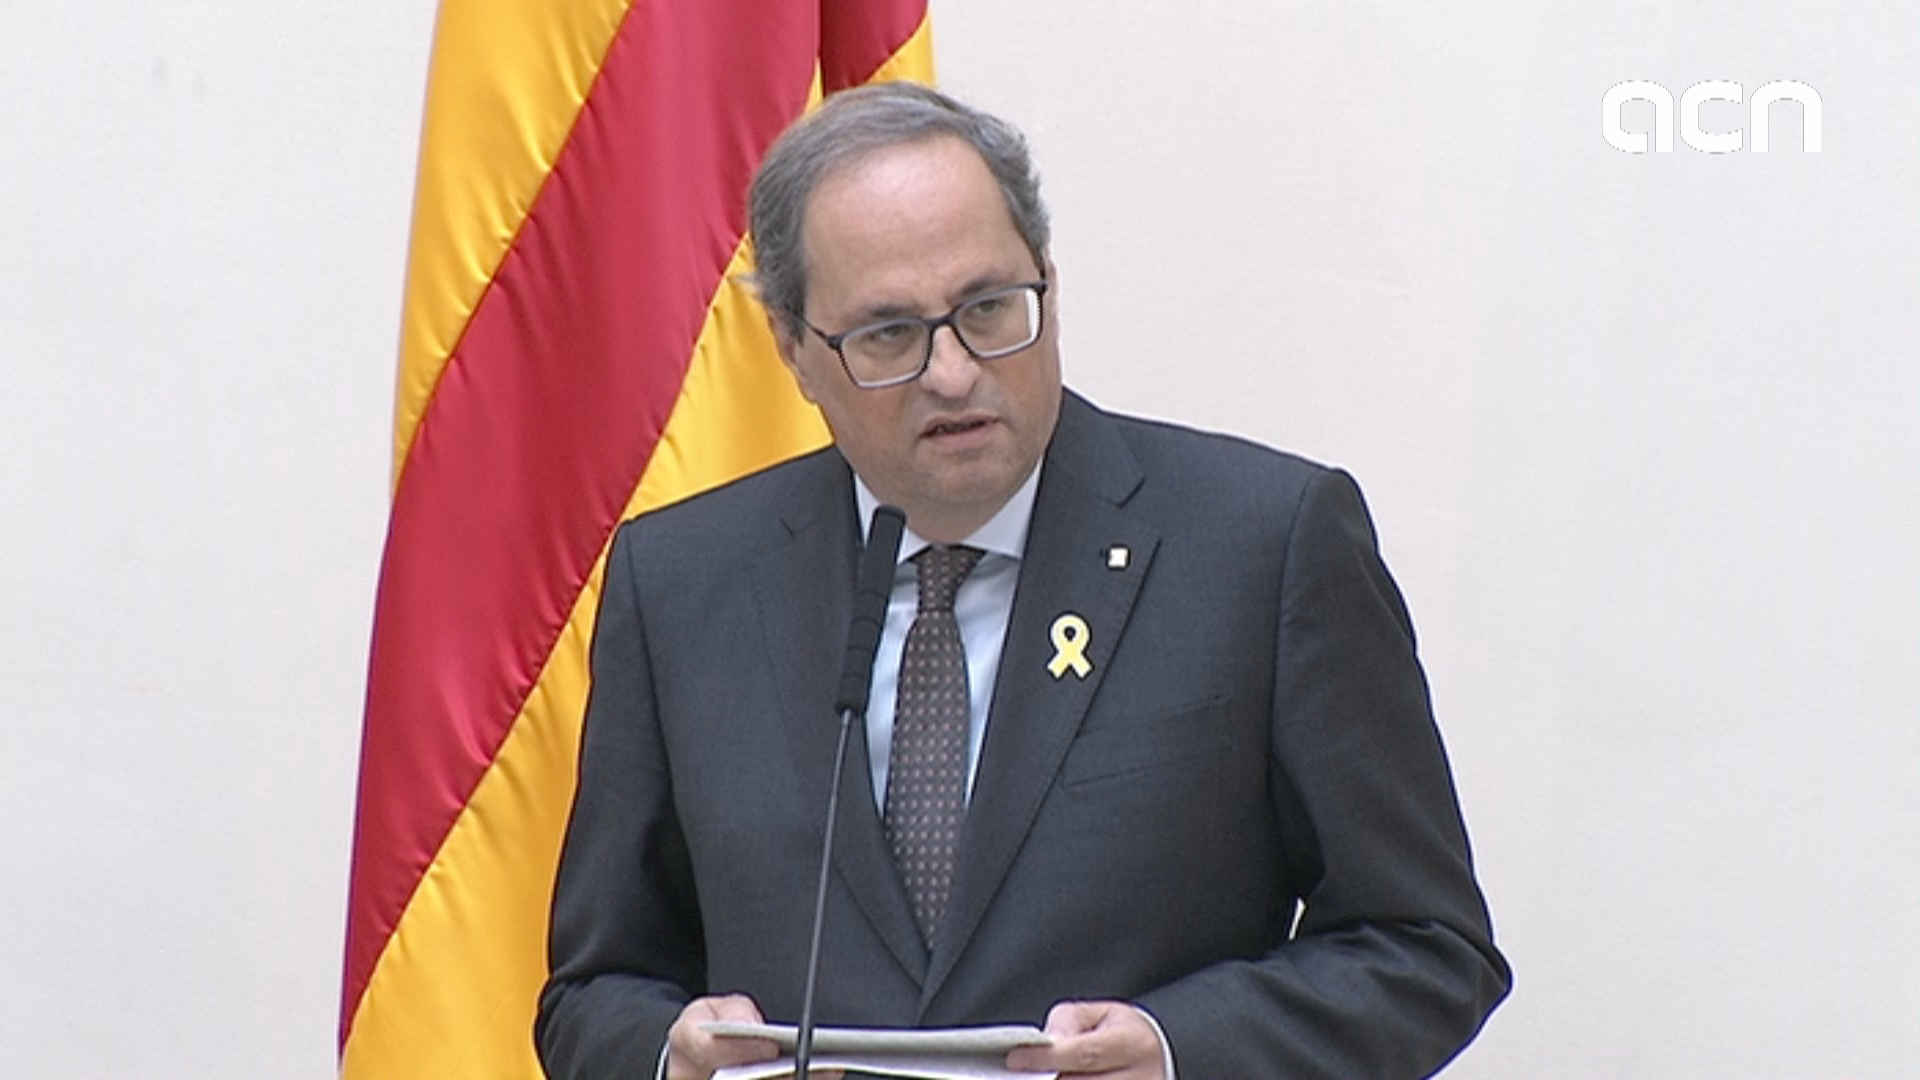 Catalan president reacts to proposed sentences for leaders